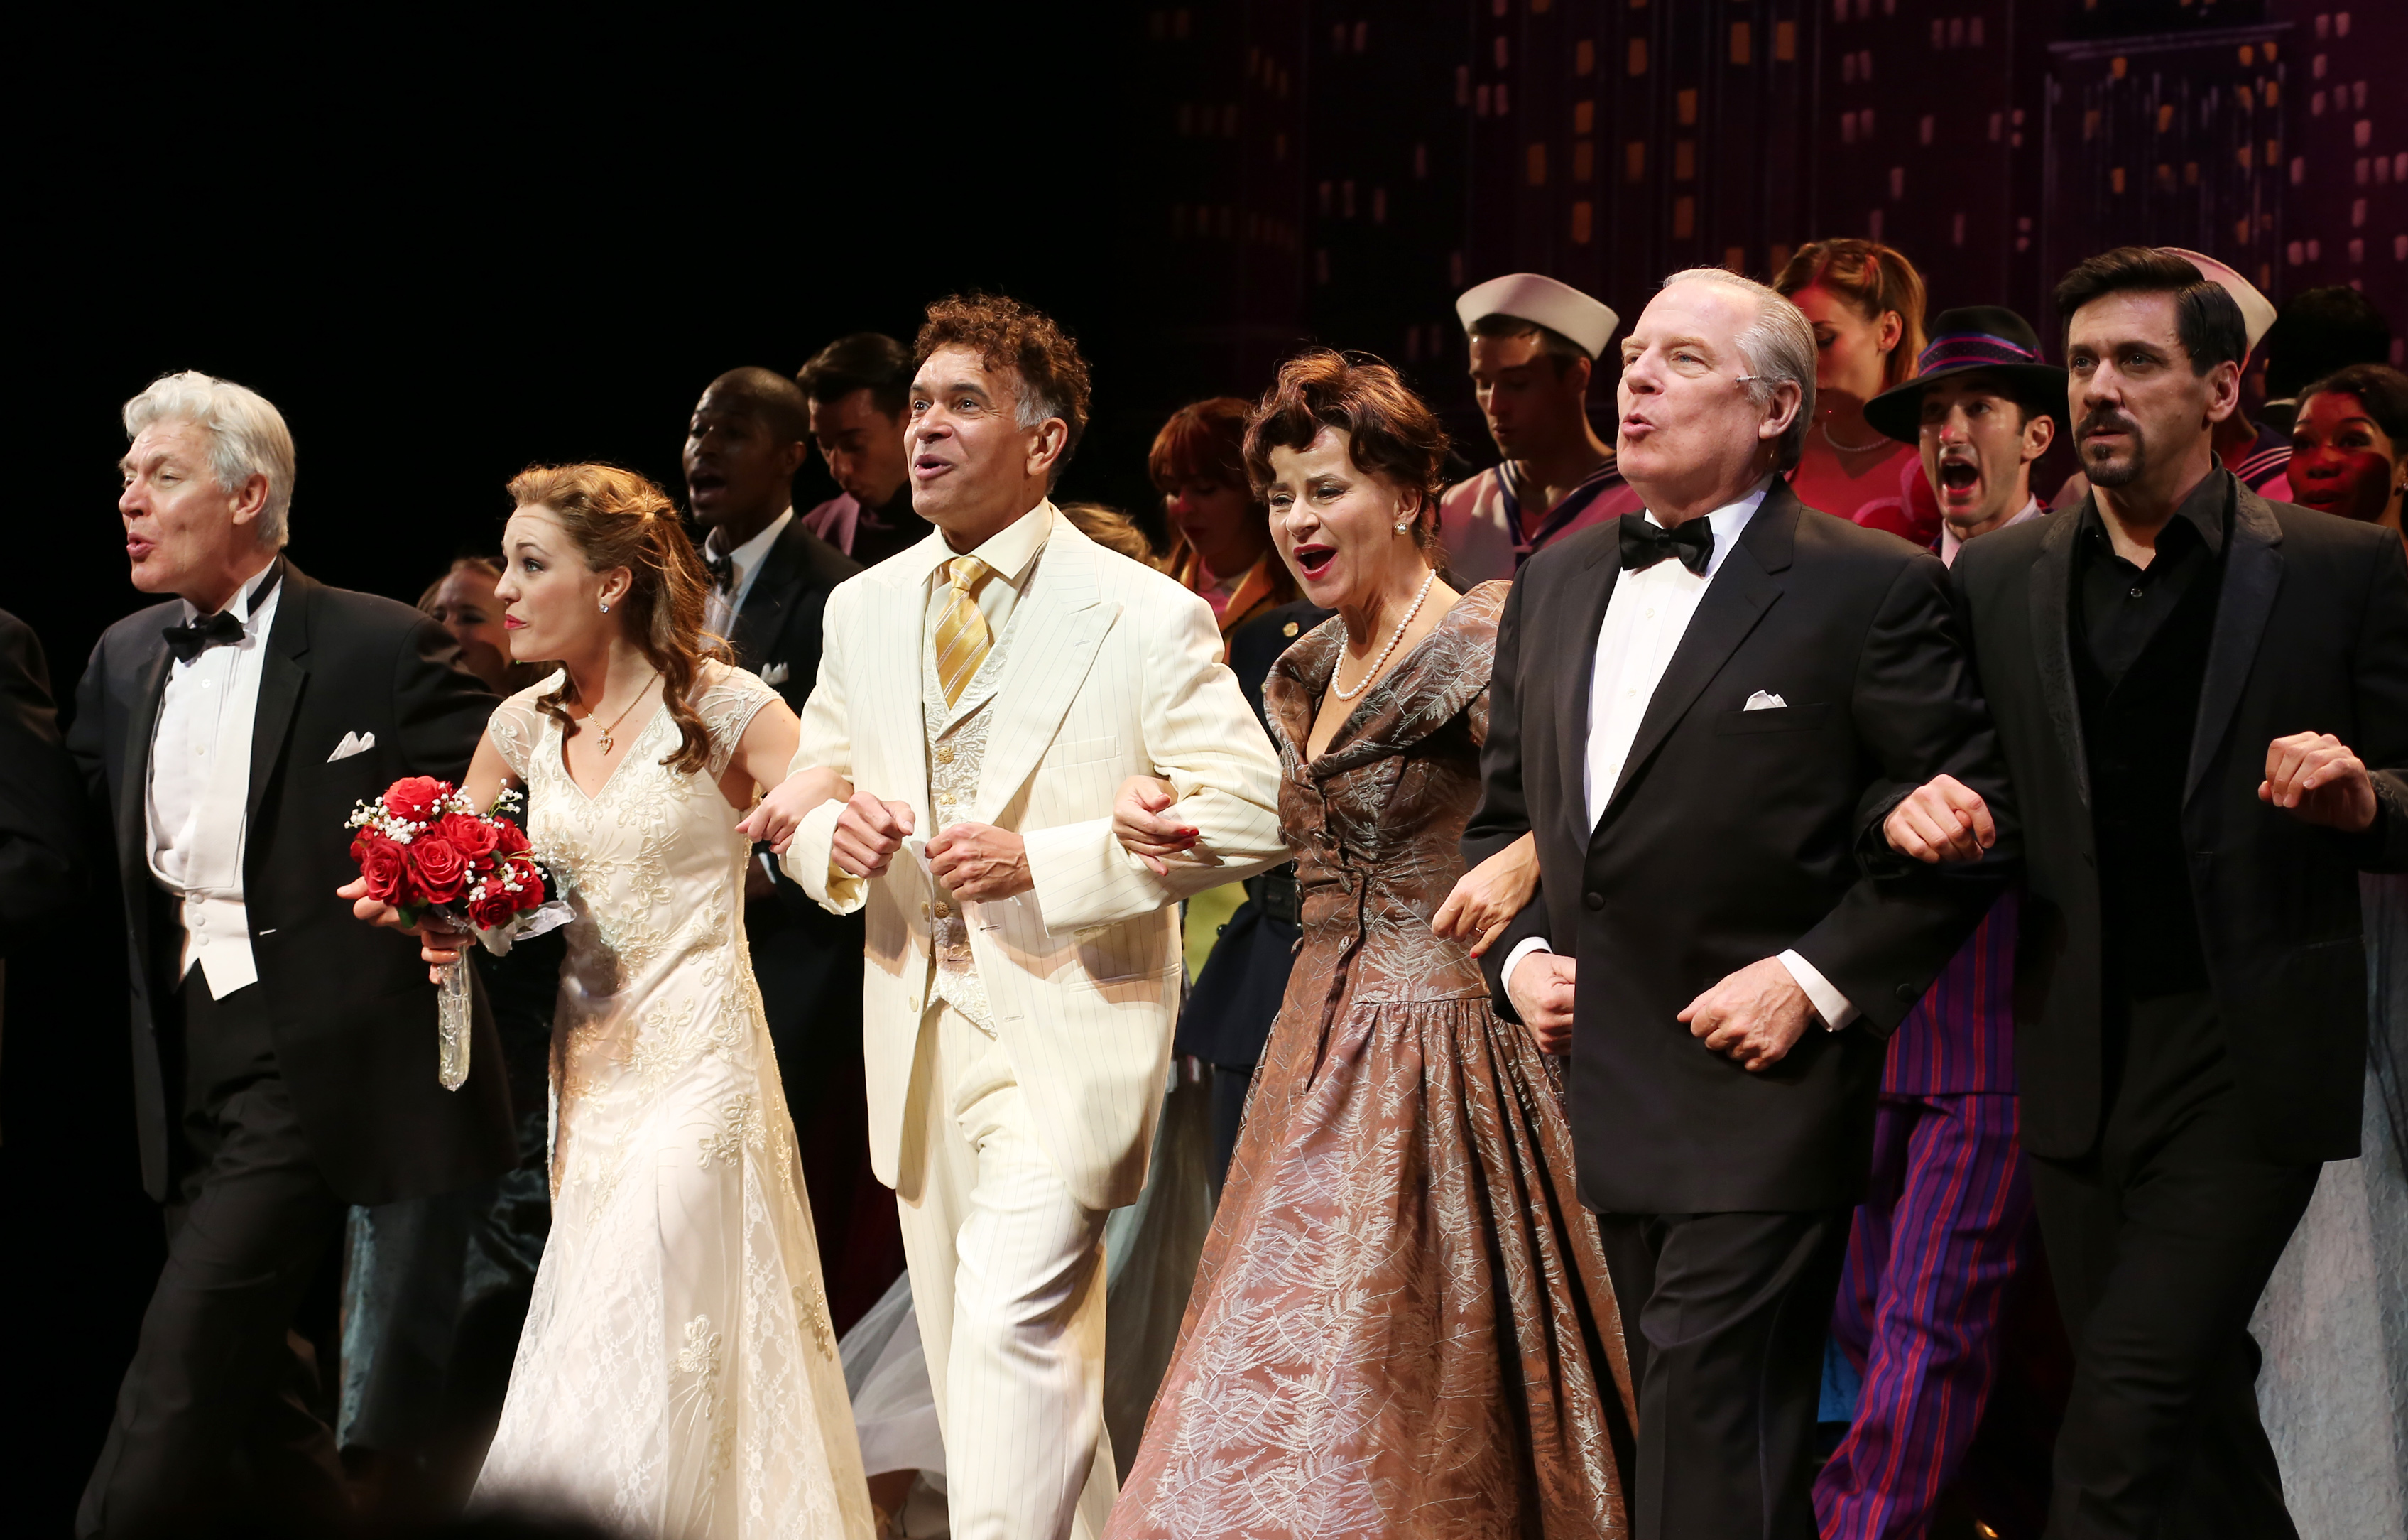 The cast  of 'The Band Wagon' during the Curtain Call on Nov. 9, 2014 in New York City.